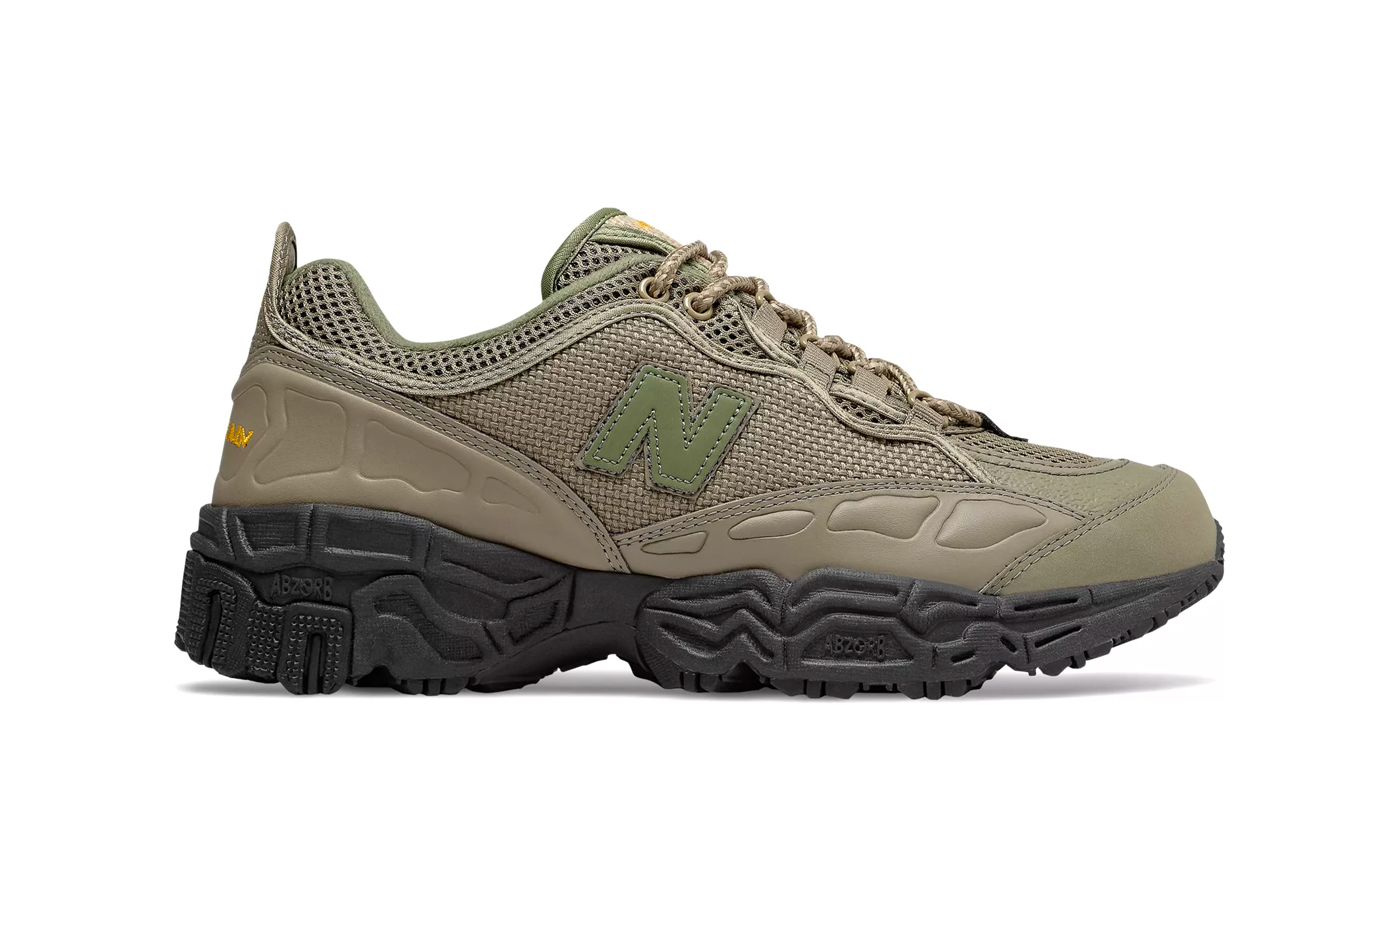 New Balance 801 Covert Green Black C CAP cushion midsole 90s trail inspired leather eva footwear sneakers shoes hiking runner trainers